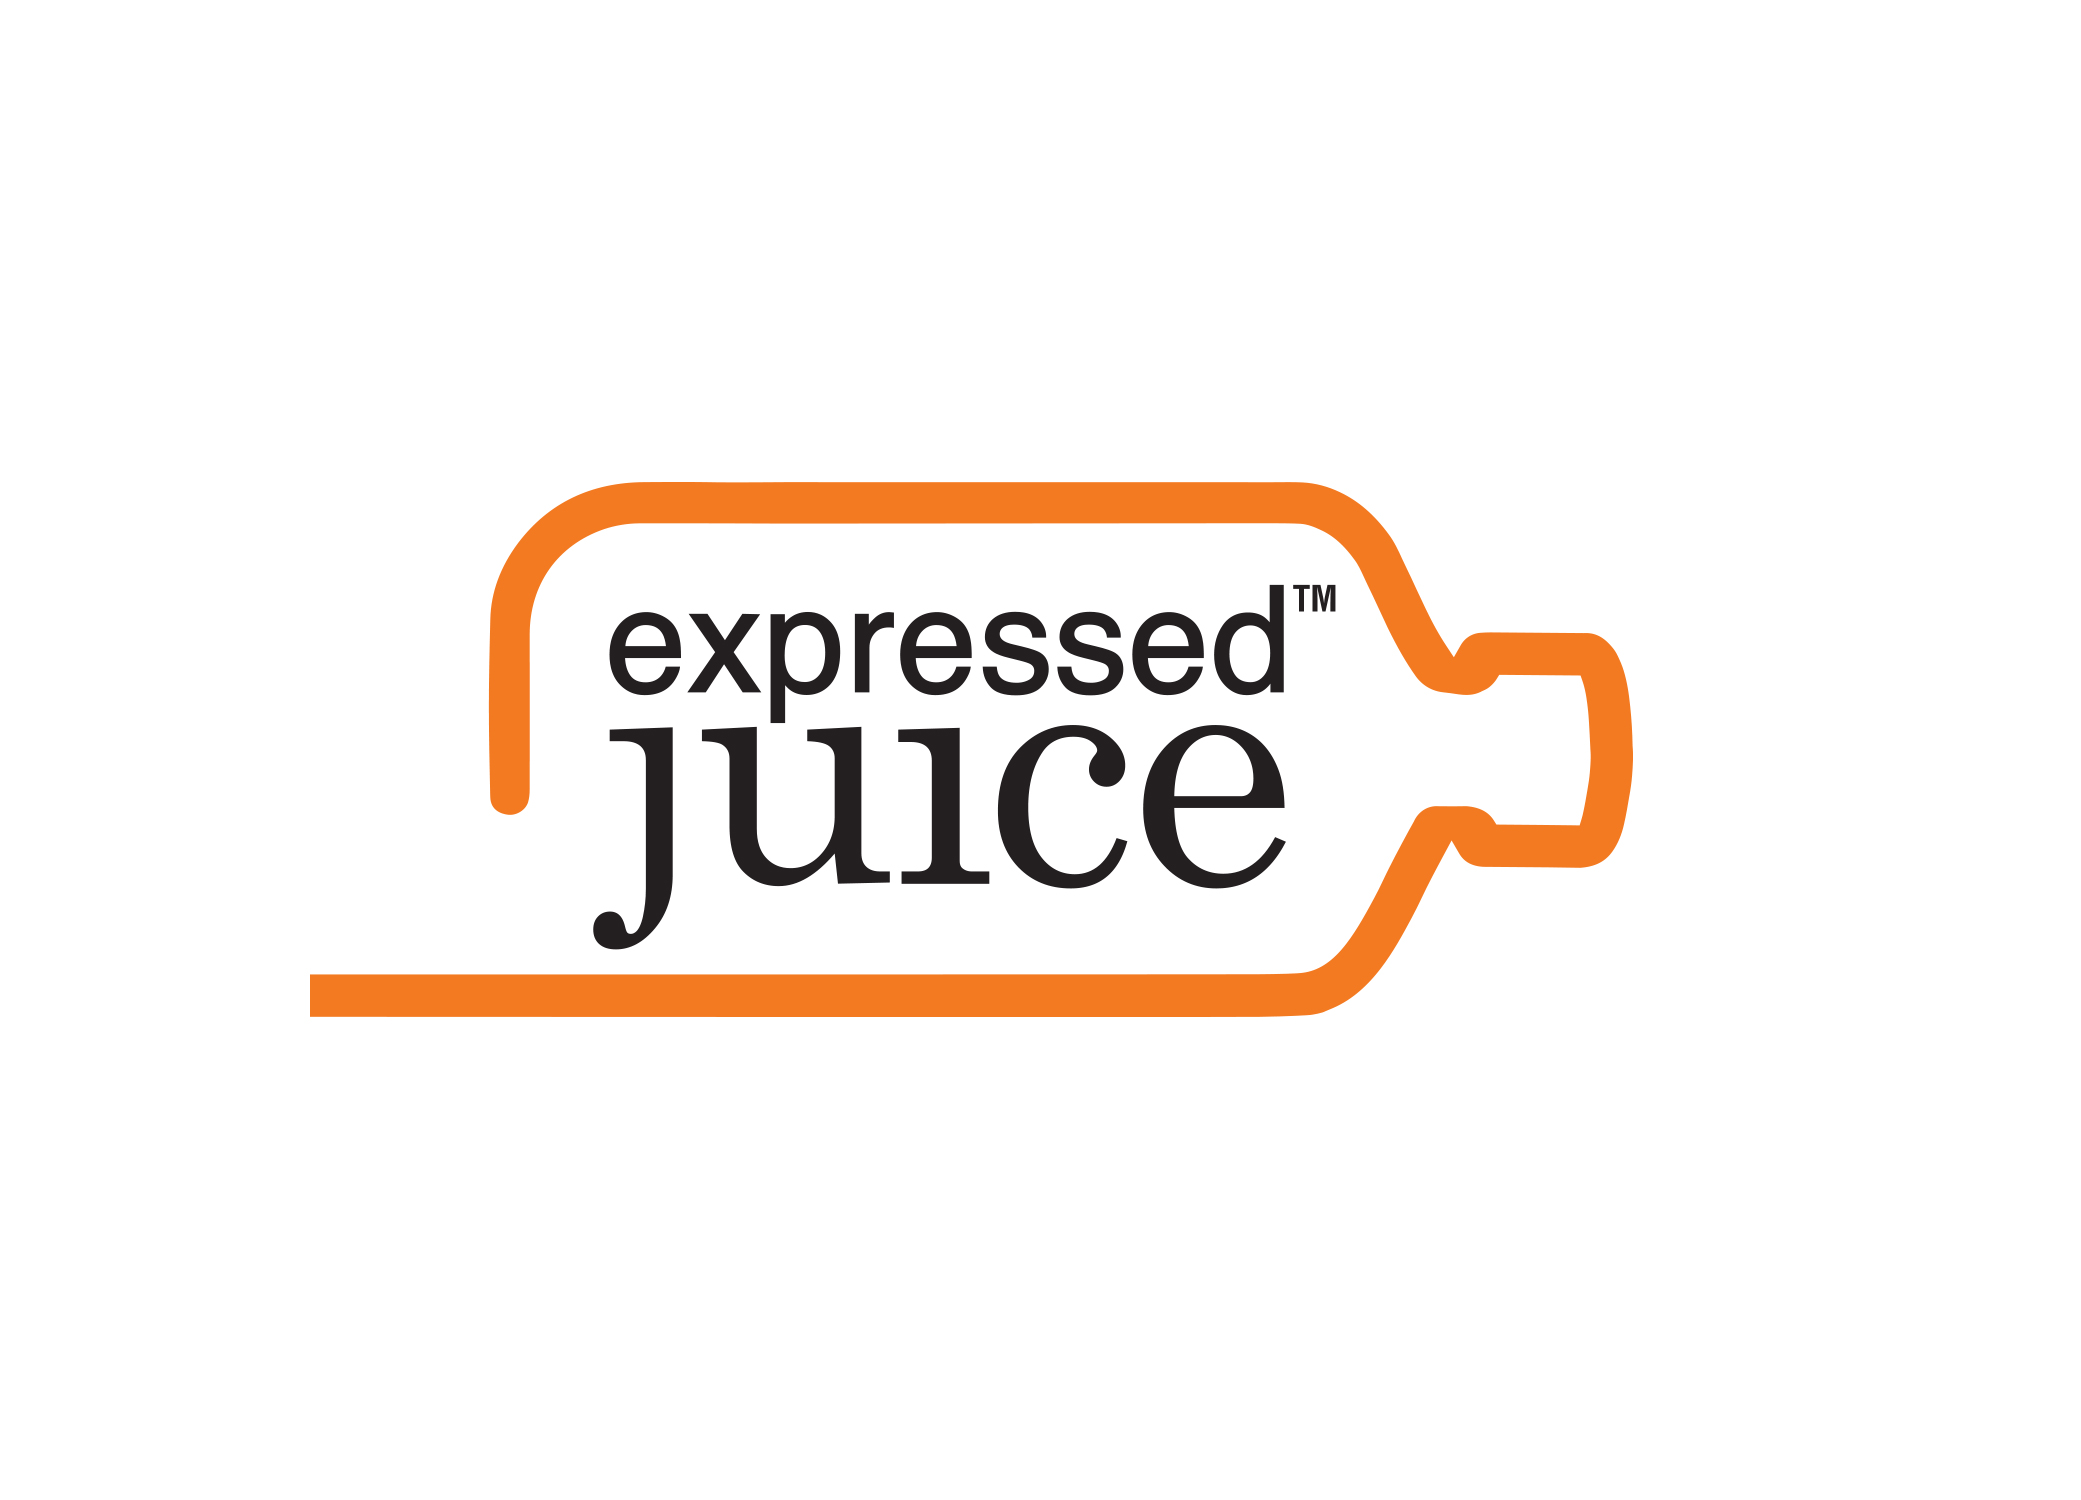 Expressed_Juice_Brand_Identity_Design